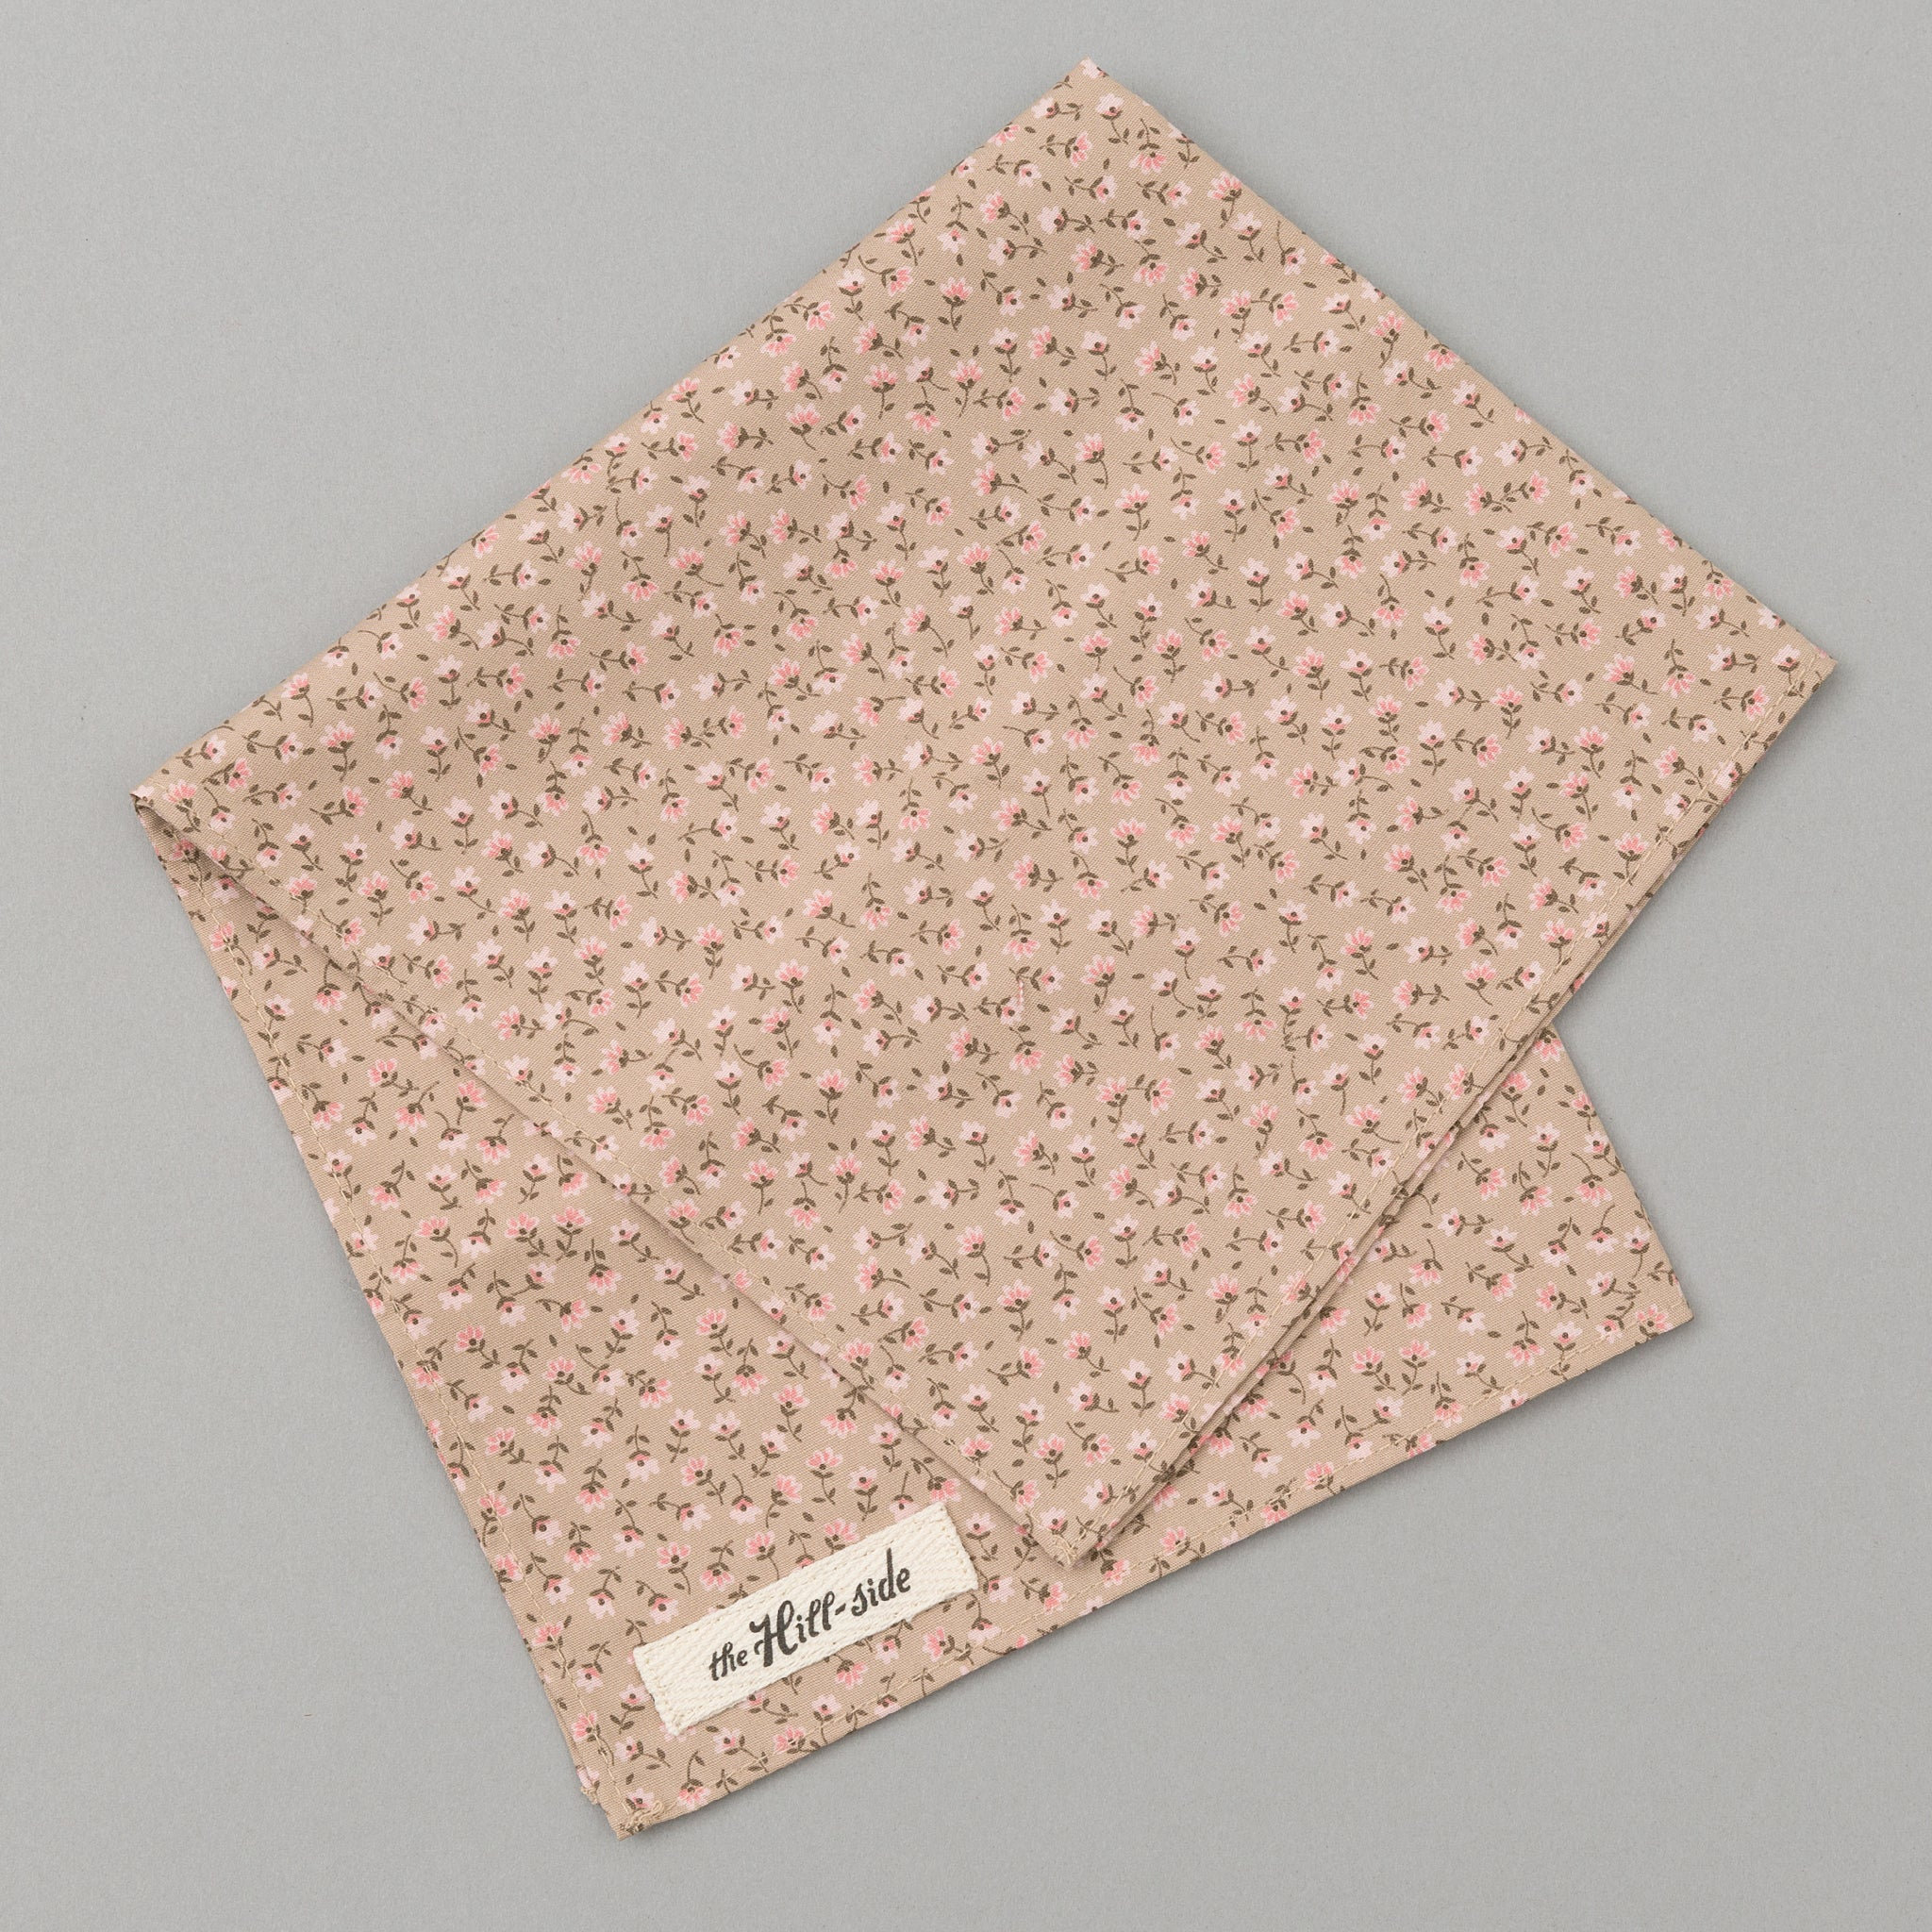 The Hill-Side - Miniature Calico Print Pocket Square, Tan - PS1-480